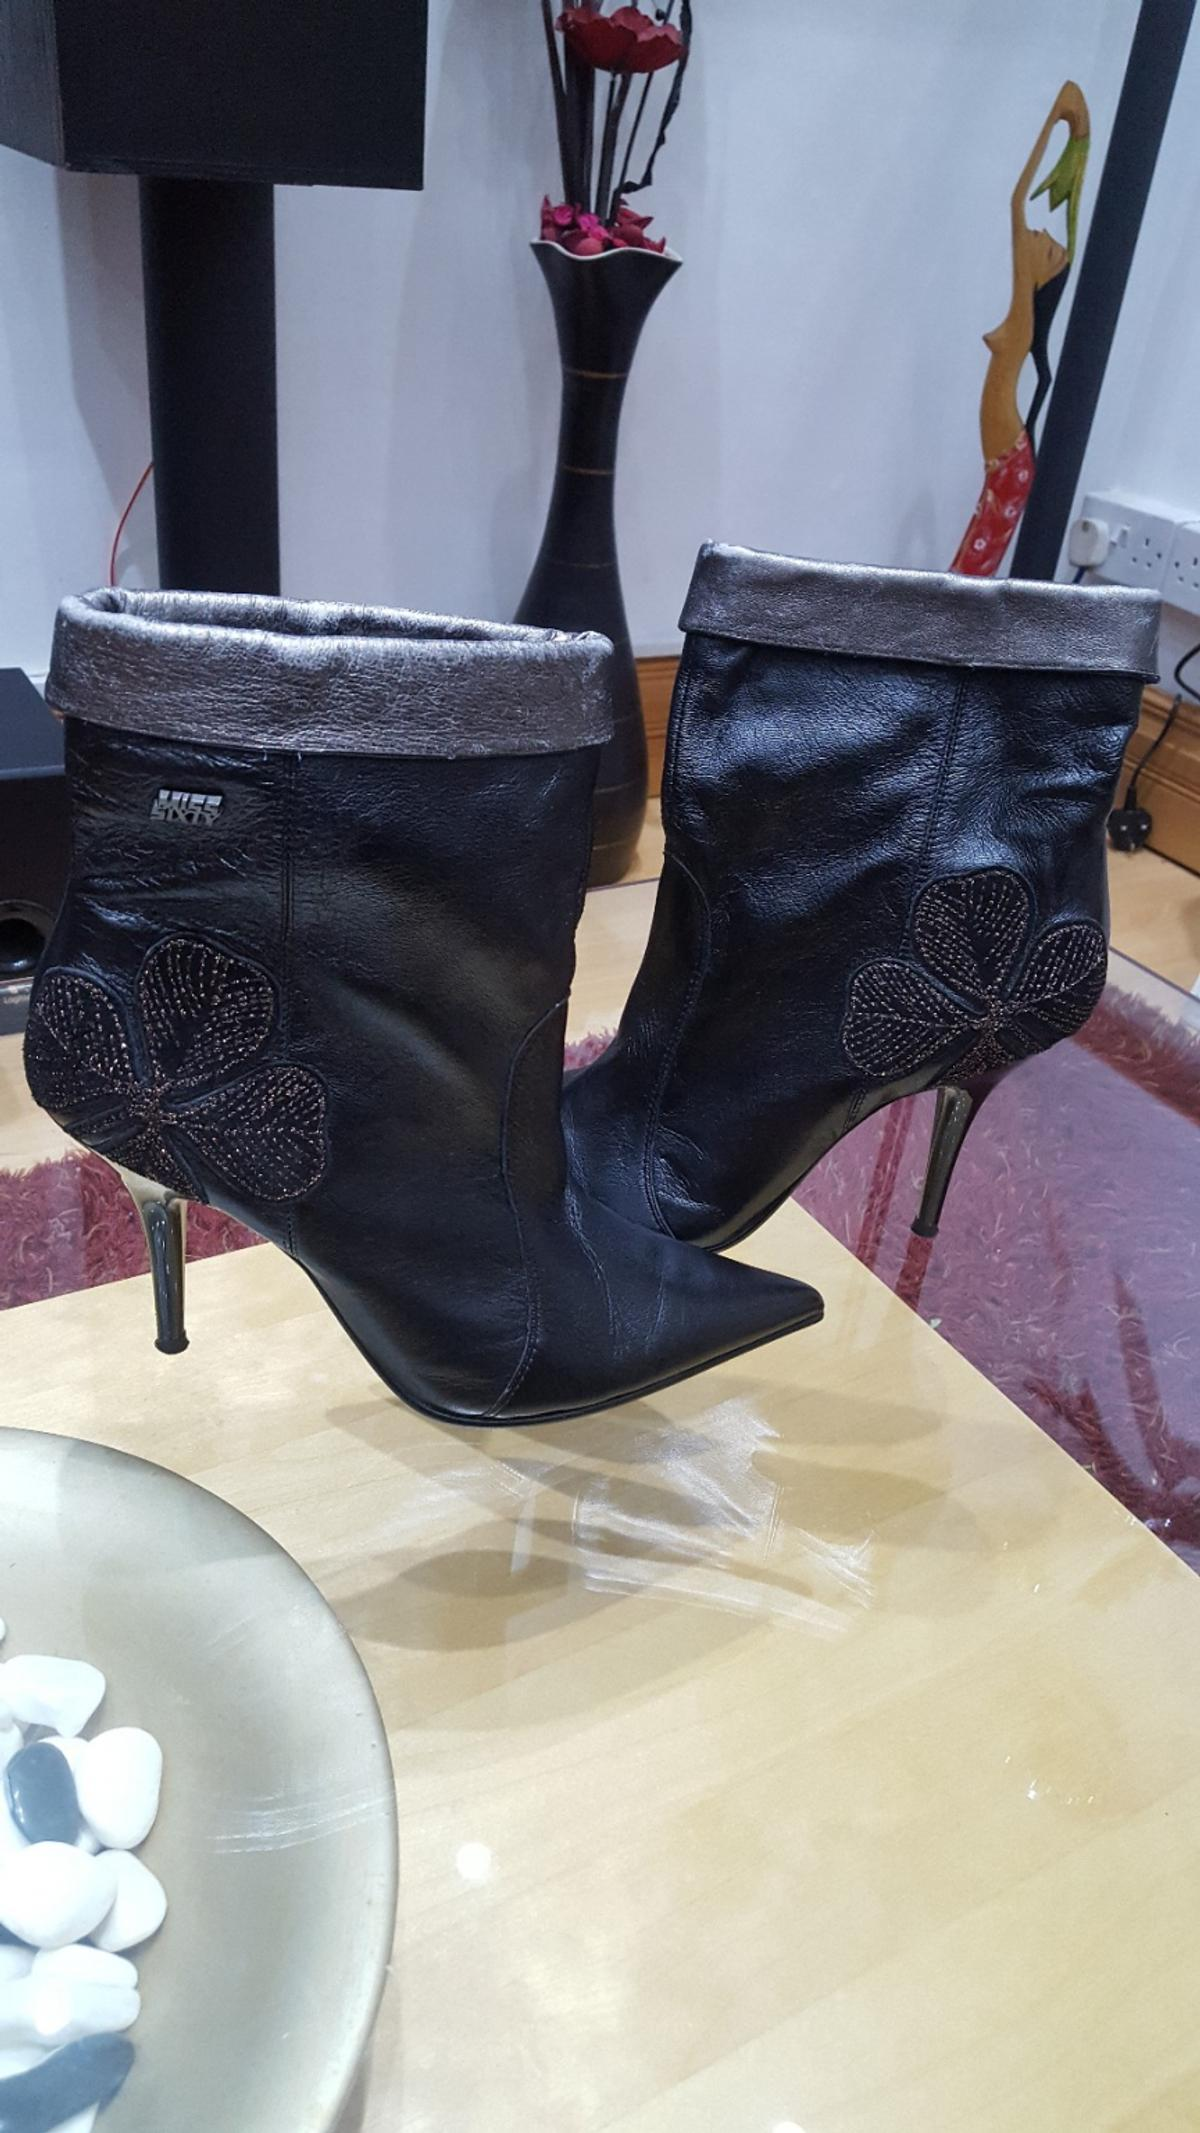 miss sixty black leather ankle boots with fancy side shamrock design size 40 which is size 7 worn once excellent condition. original price 135 selling for bargain price 35 pounds